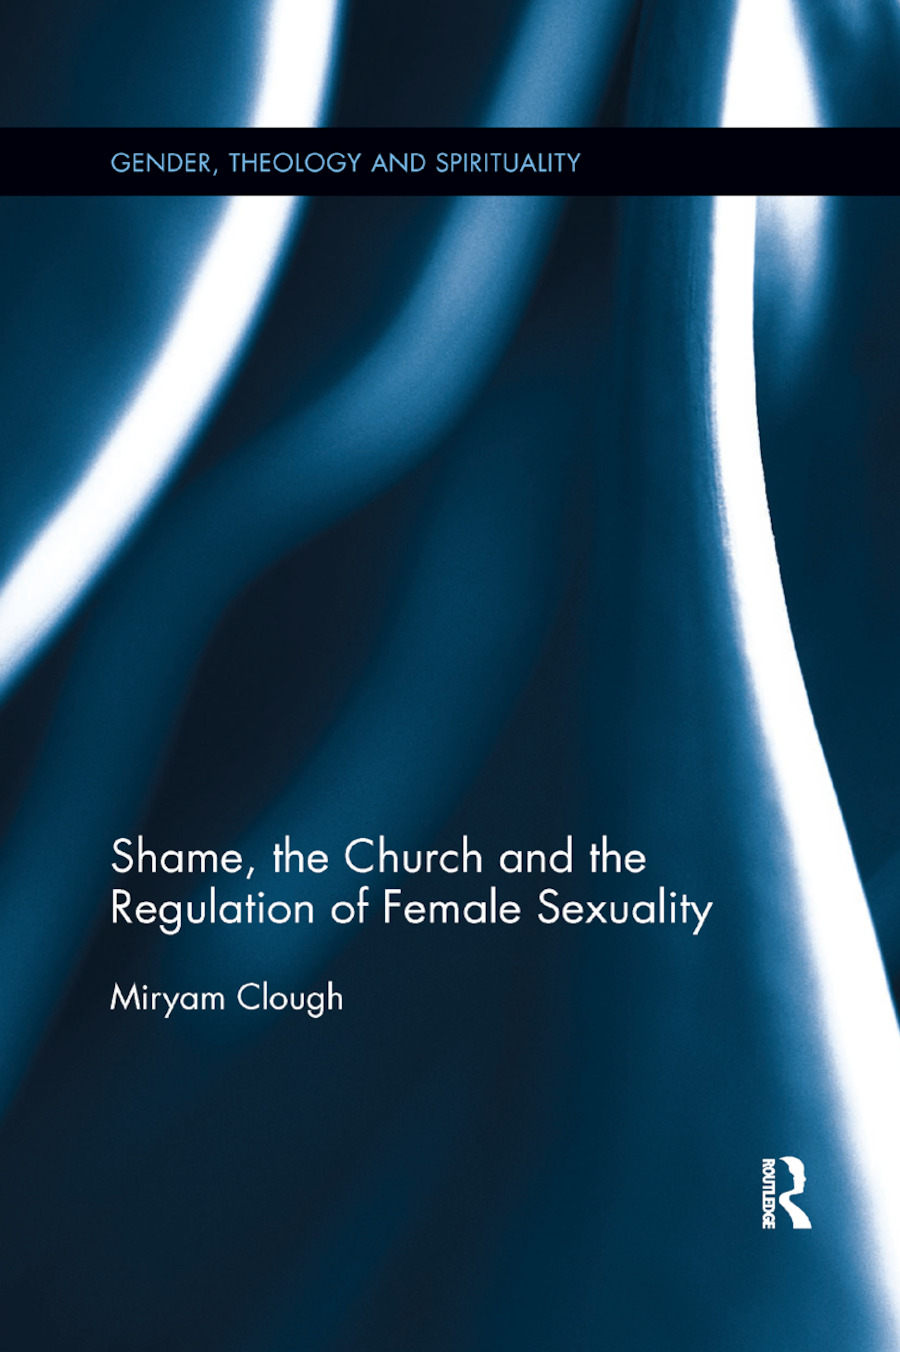 Shame, the Church and the Regulation of Female Sexuality